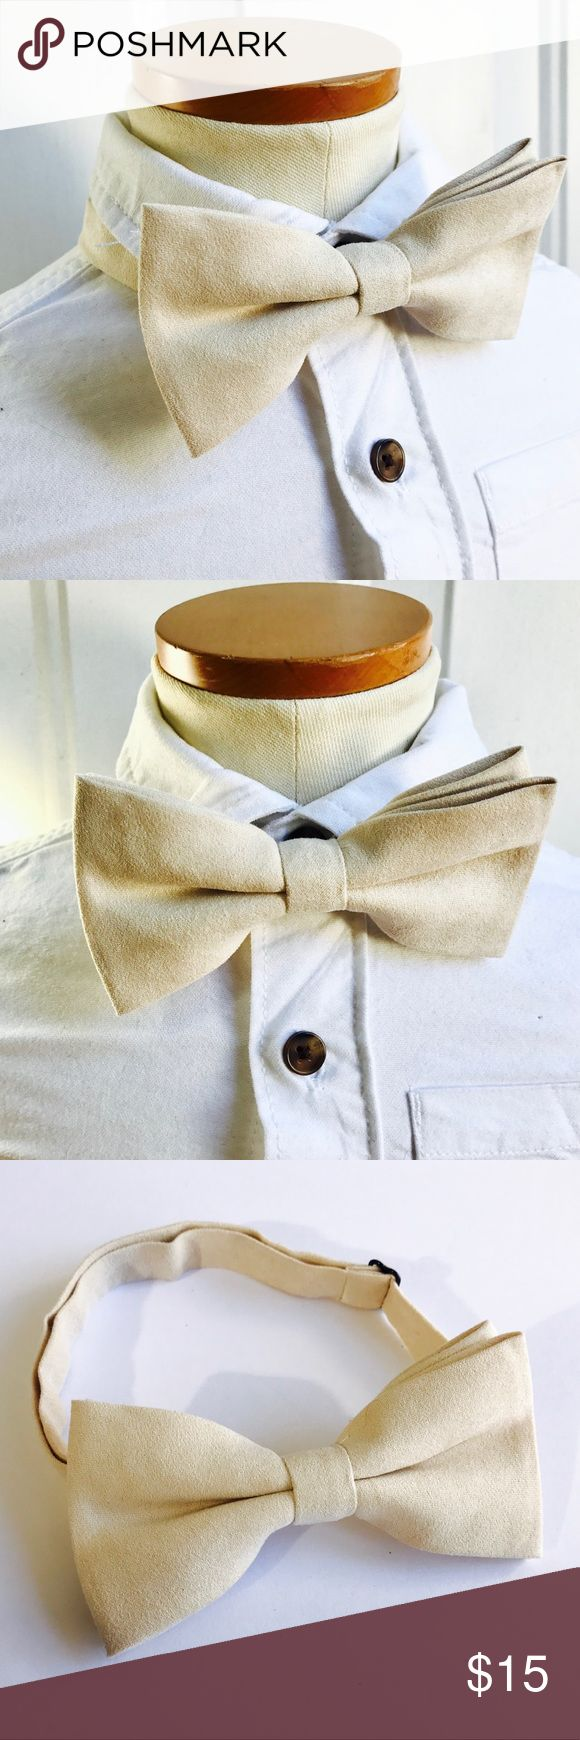 Cream bow tie,ivory bow tie,velvet bow tie,bowties Gorgeous  creamy white velvet bow tie, perfect form at occasion specially holidays season. One sizes fits most from ages 4 months to adult, adjustable necktie. Accessories